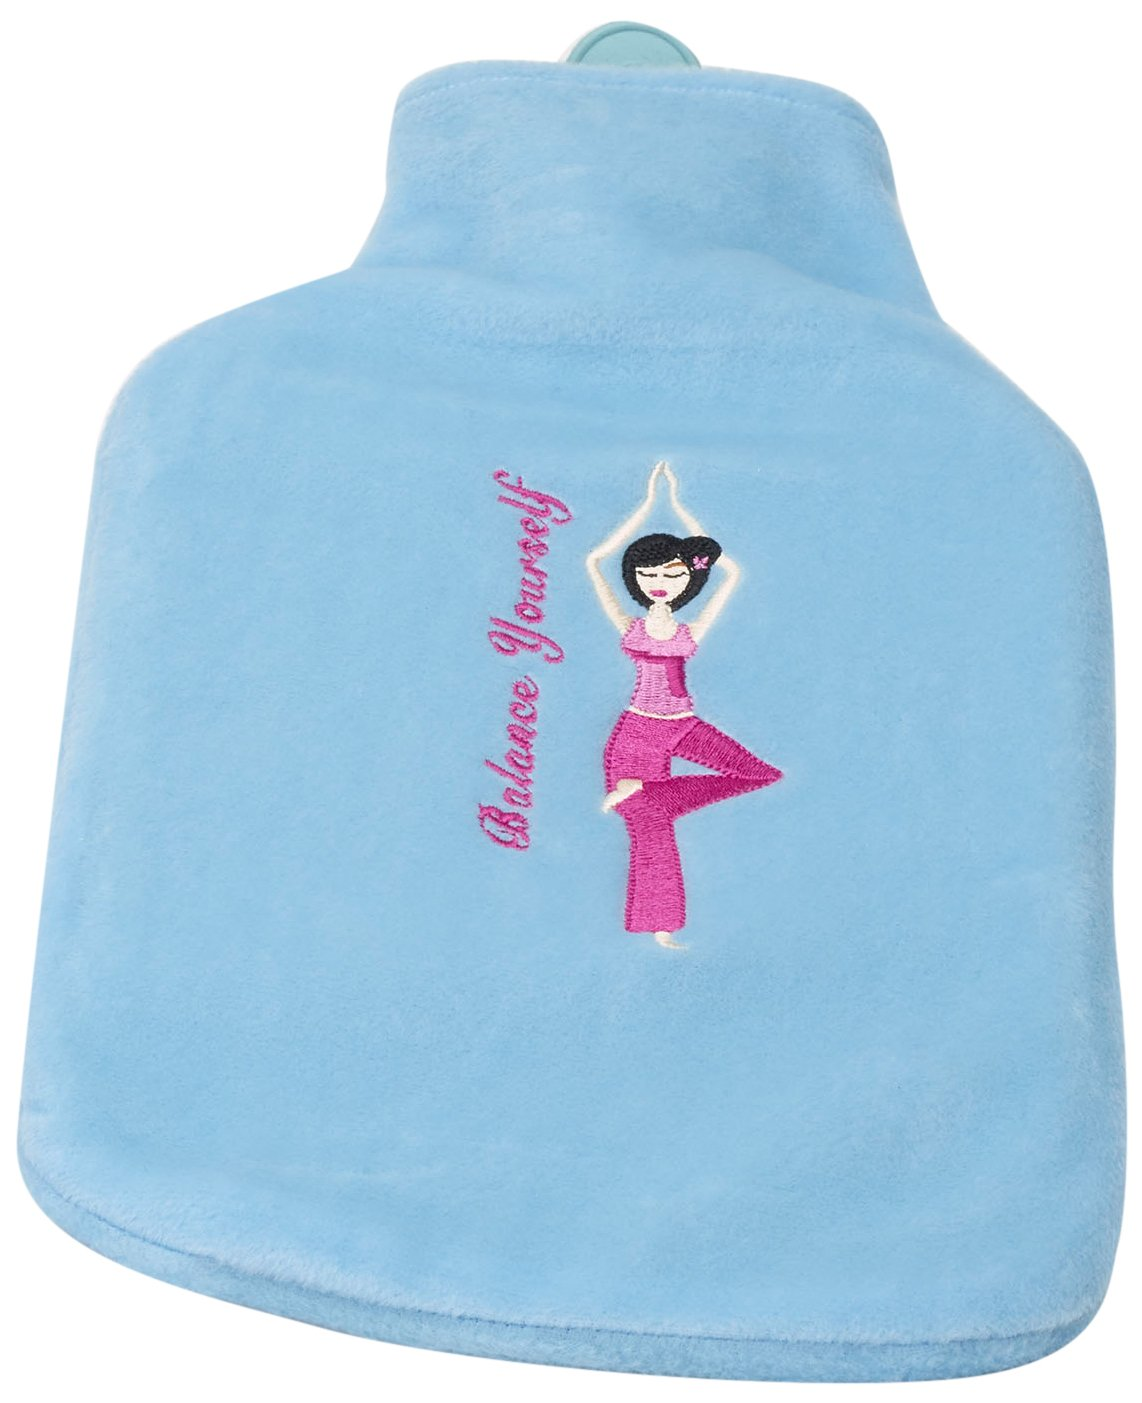 Spa Comforts Balance Yourself Water Bottle, Blue